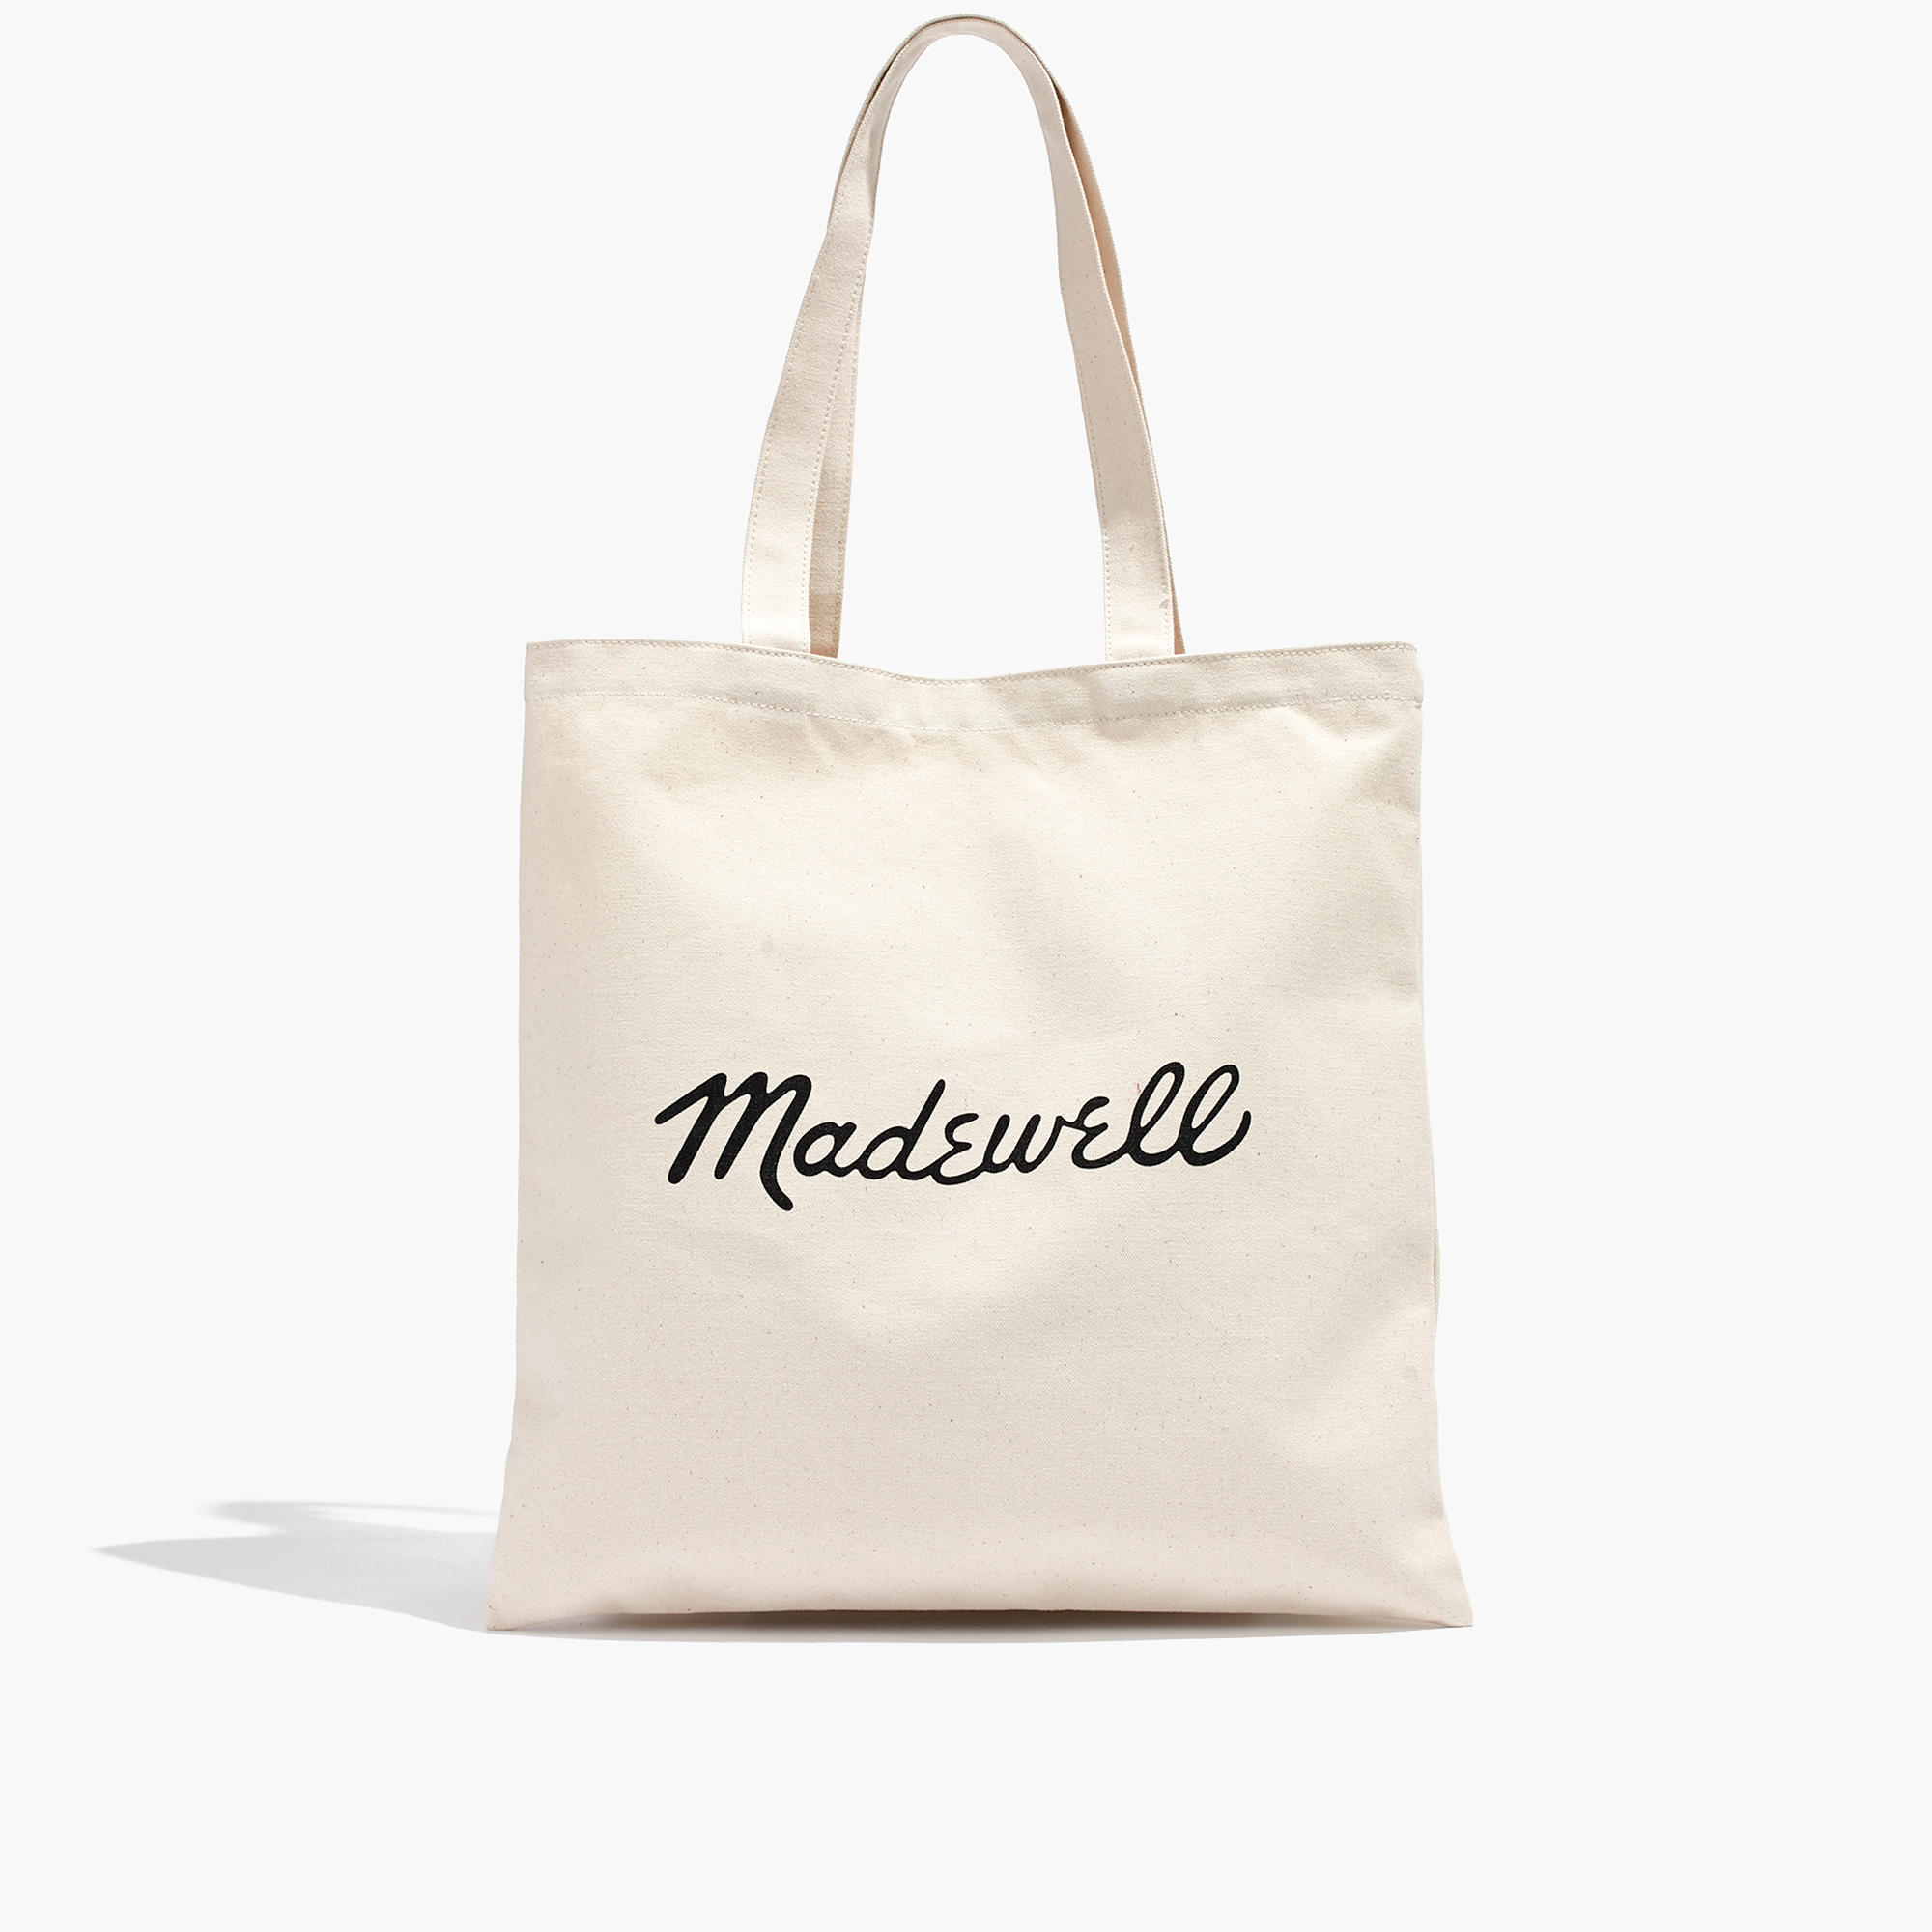 The Reusable Canvas Tote : totes | Madewell